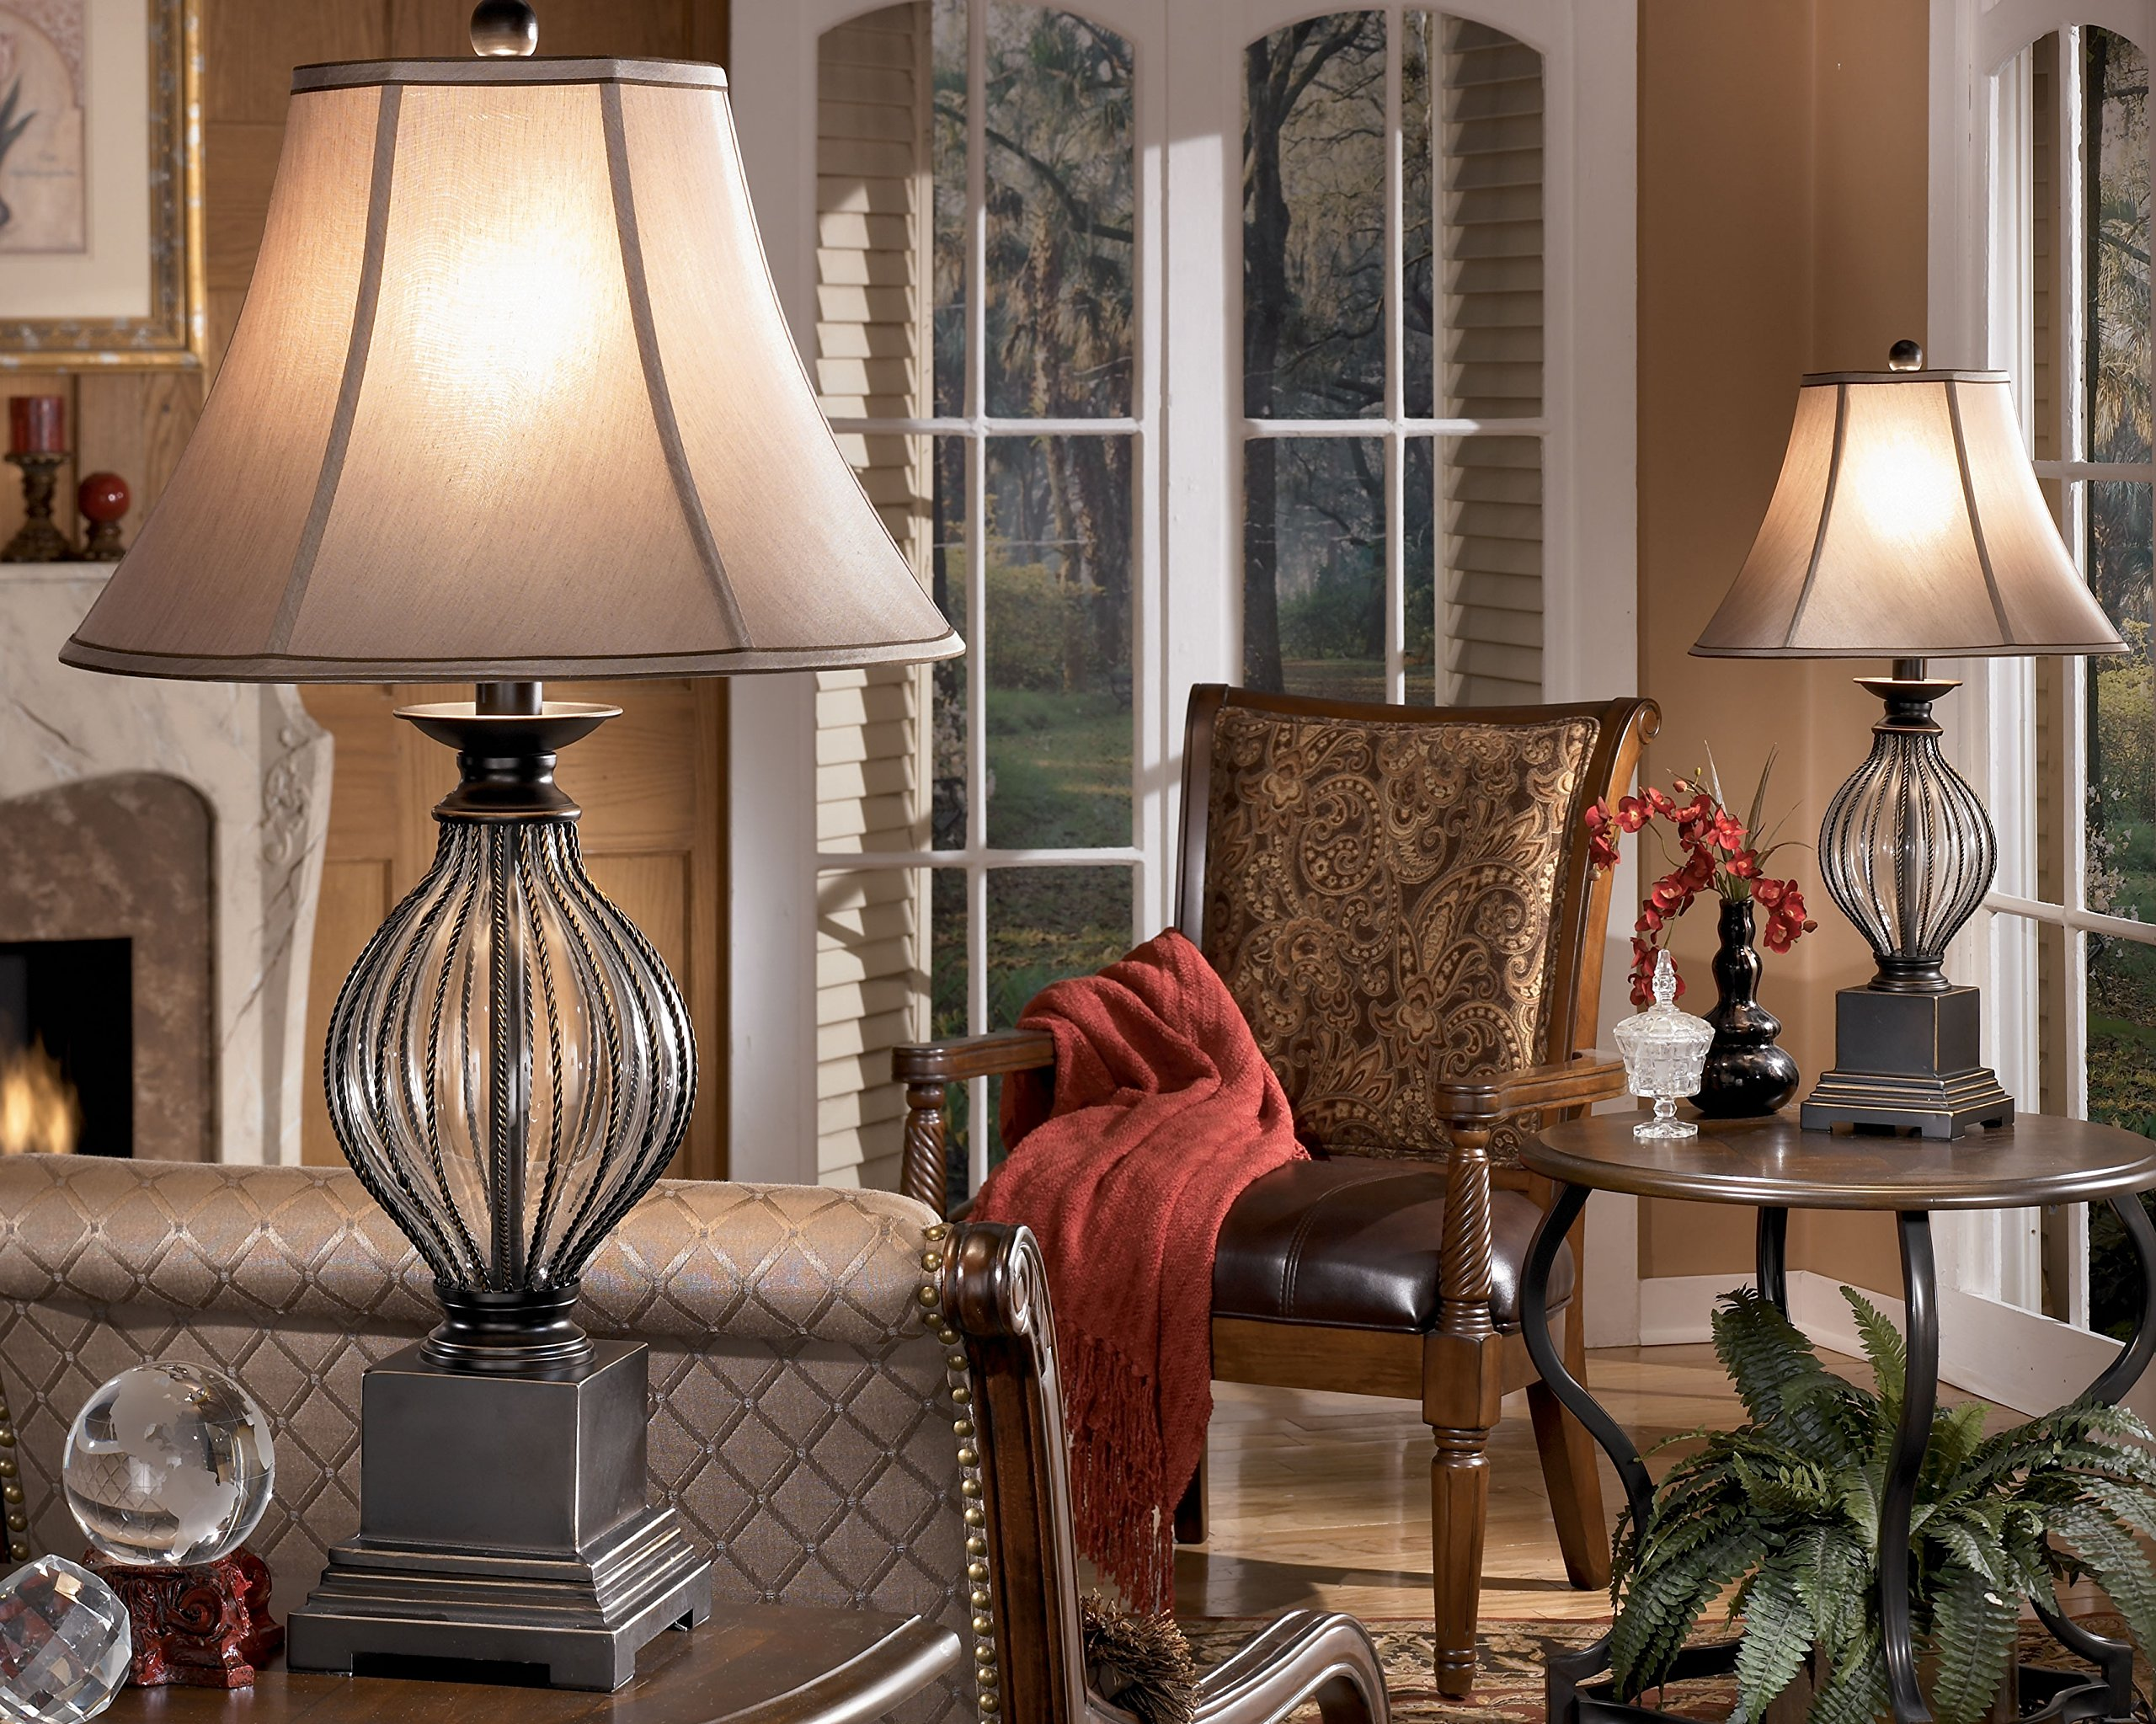 Signature Design by Ashley L442234 Ashley Furniture Signature Design - Ondreya Table Lamp - Traditional - Set of 2 - Bronze Finish, 17.0'' x 17.0'' x 31.0''